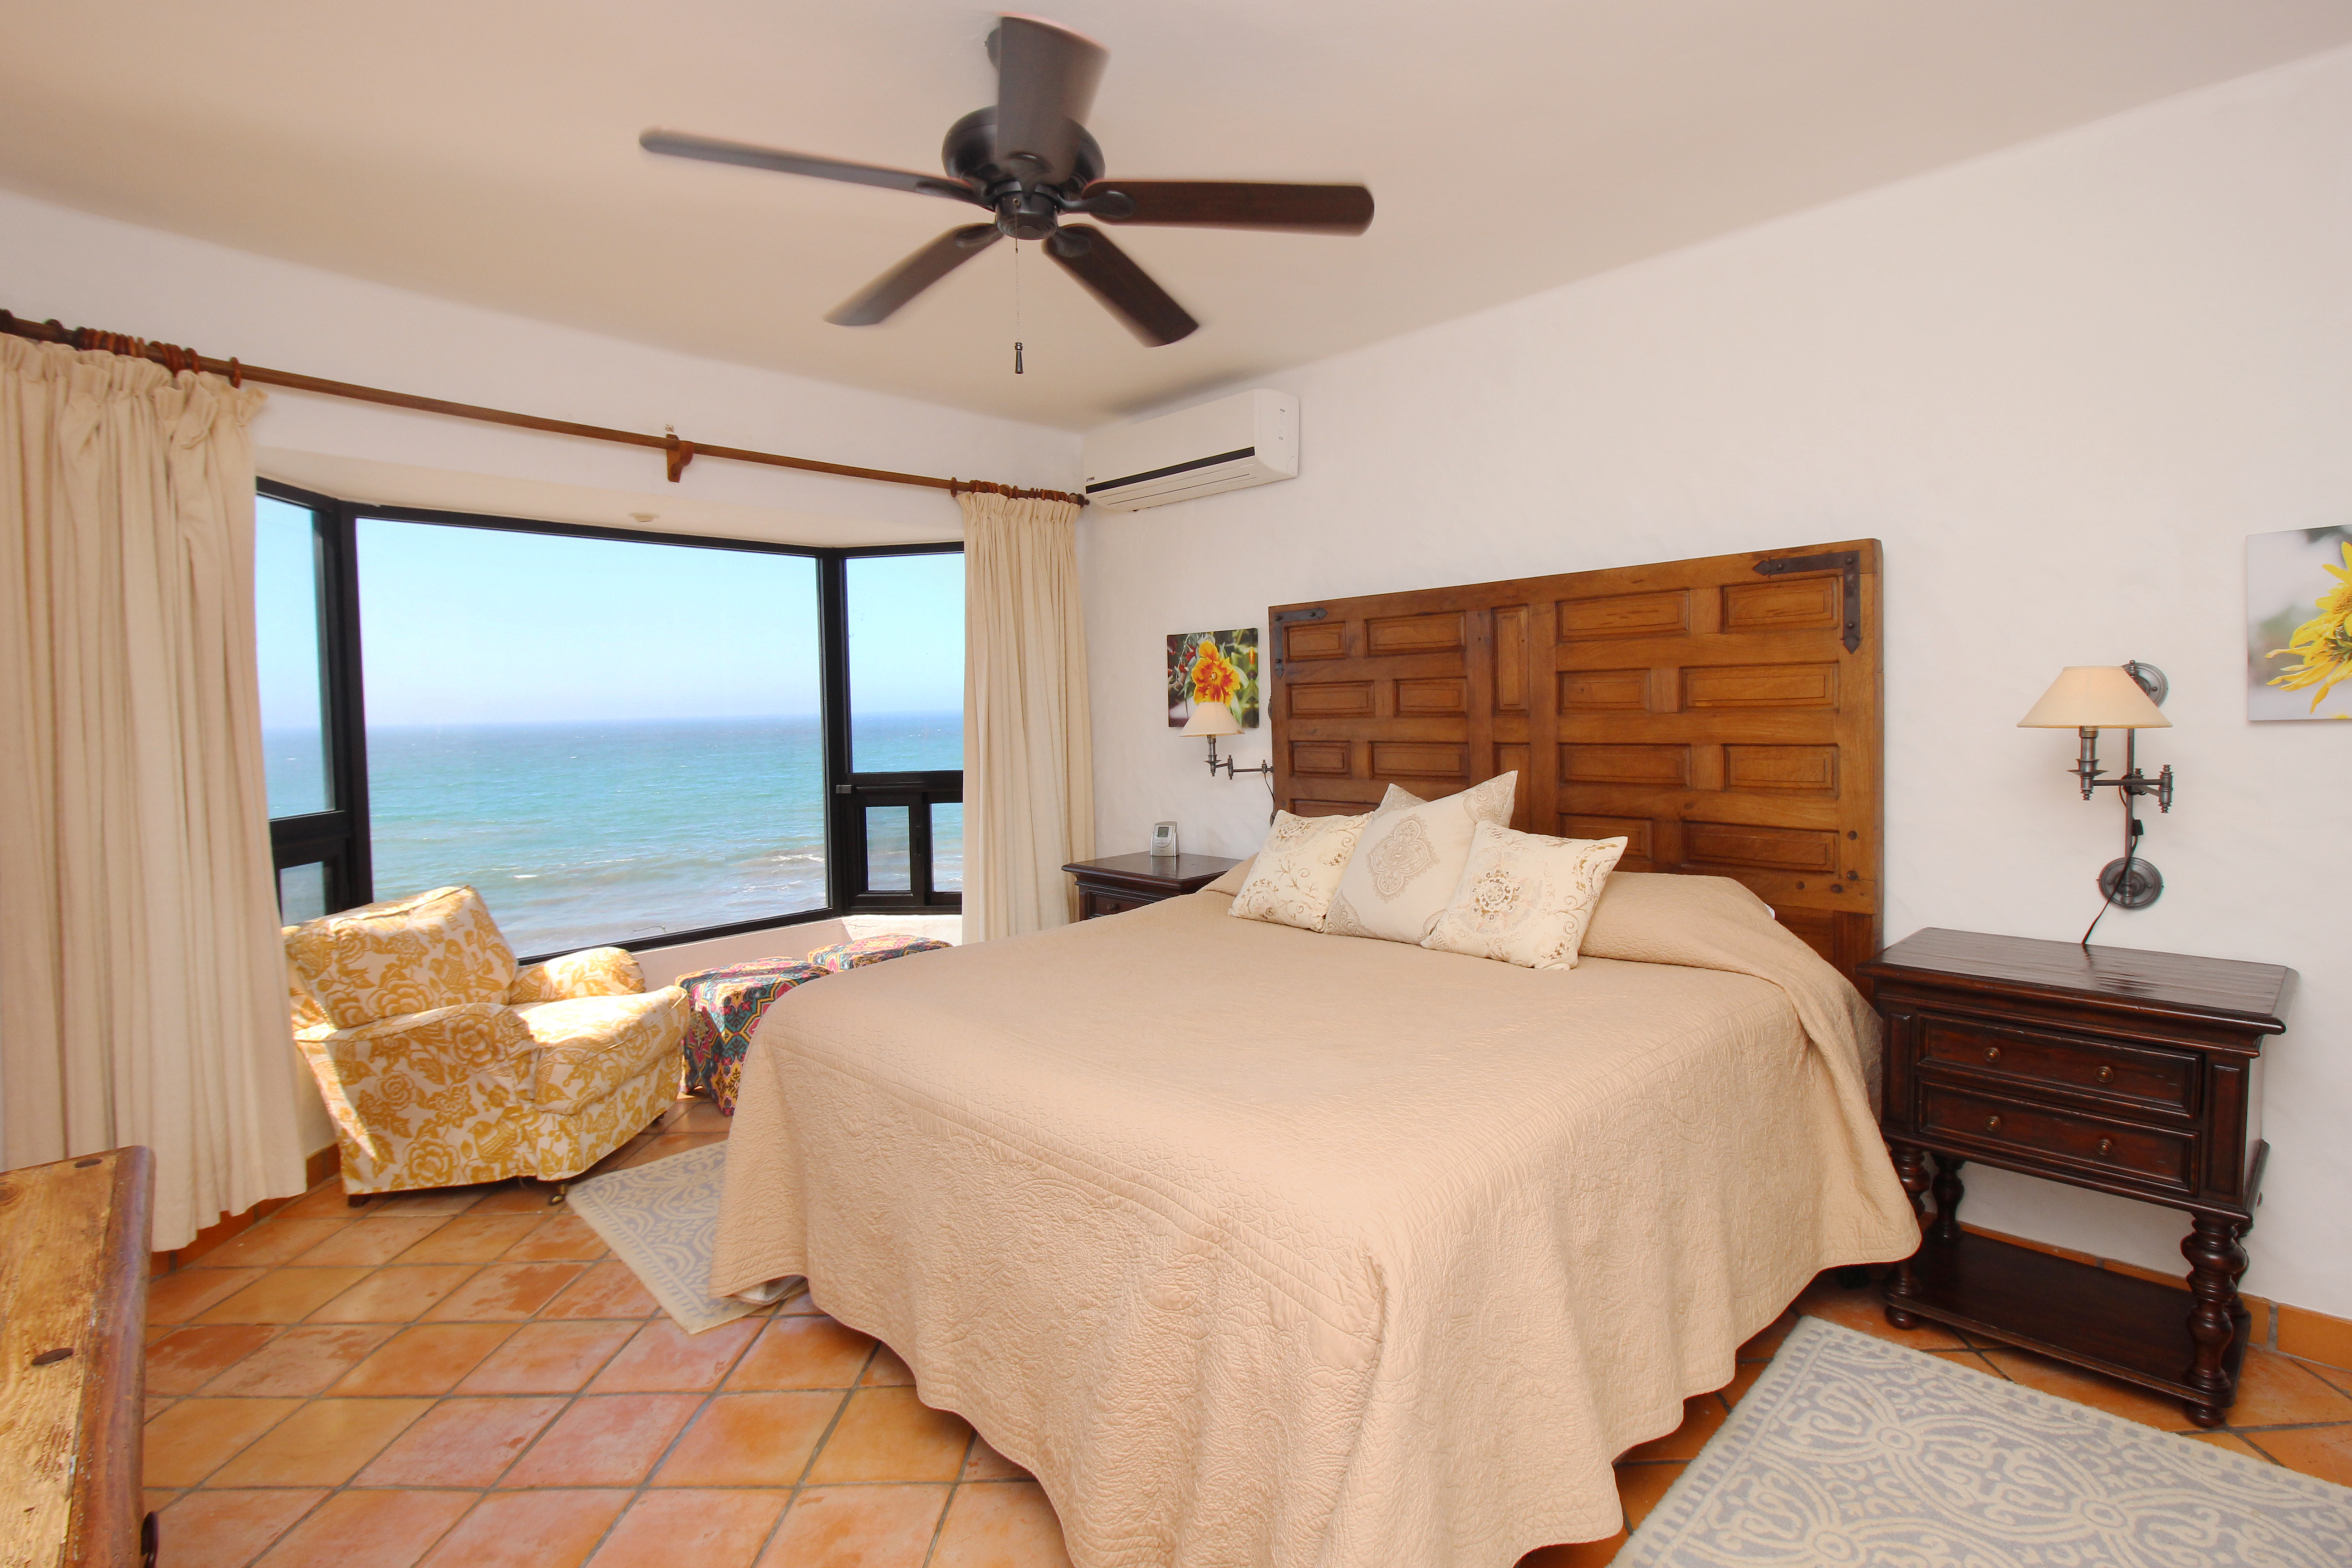 Master bedroom with ocean views on second level.